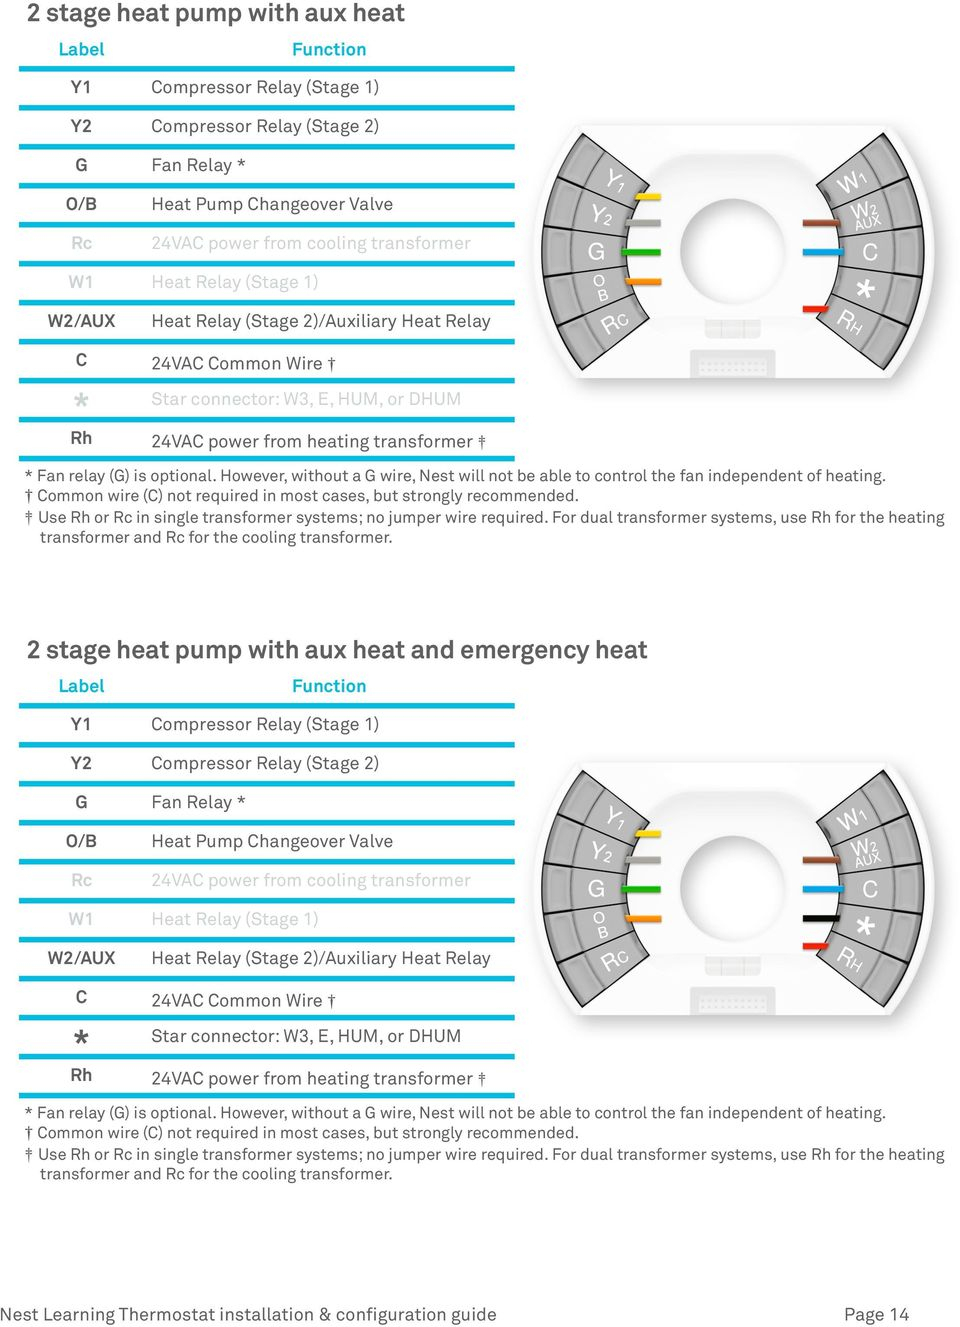 Nest Learning Thermostat Pro Installation & Configuration Guide - Pdf - Nest Wiring Diagram Rc Or Rh